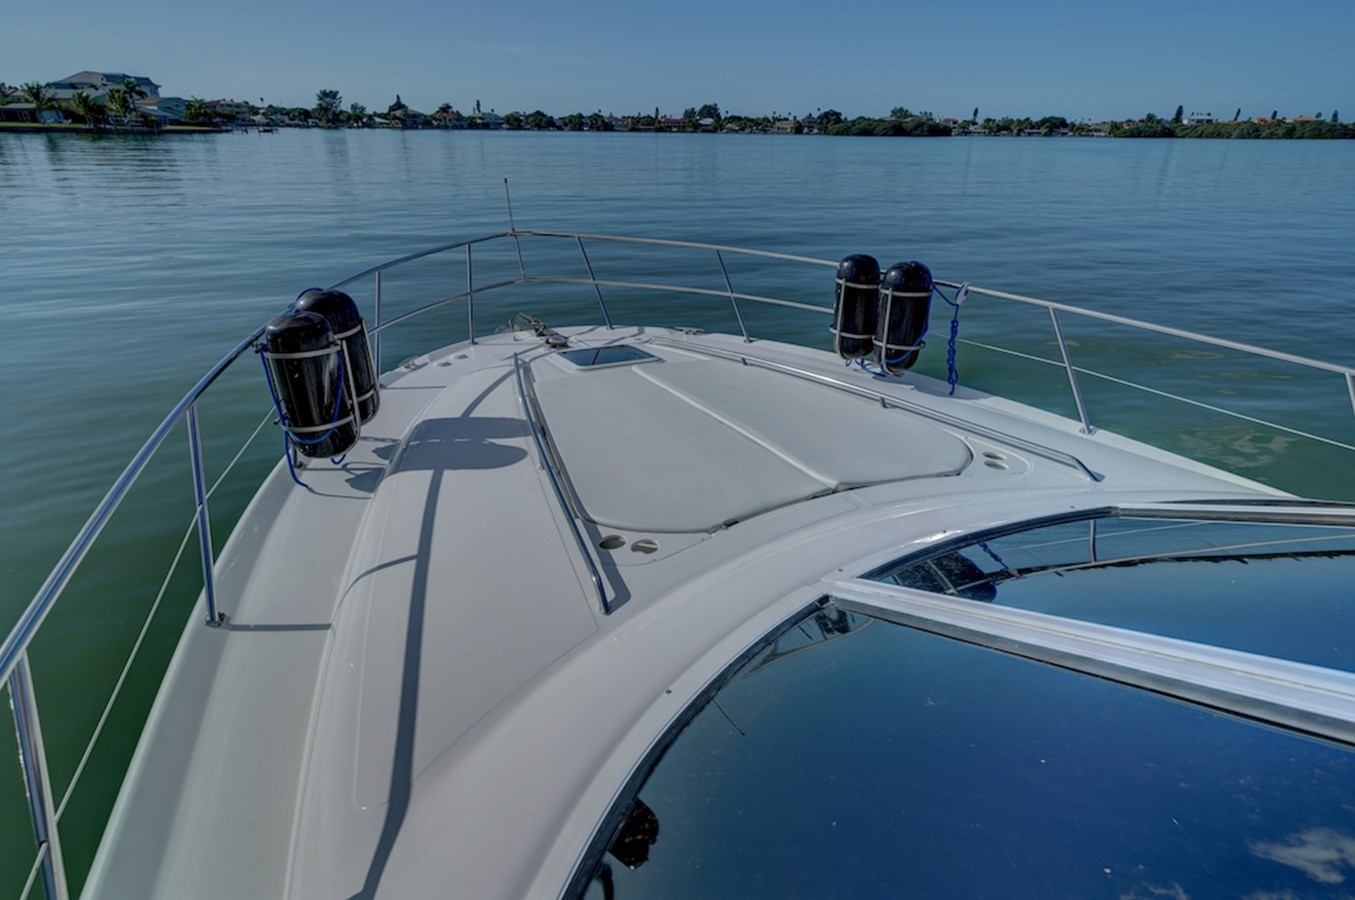 50 ft. Sea Ray – Luxury Power Yacht - Sun padded front deck